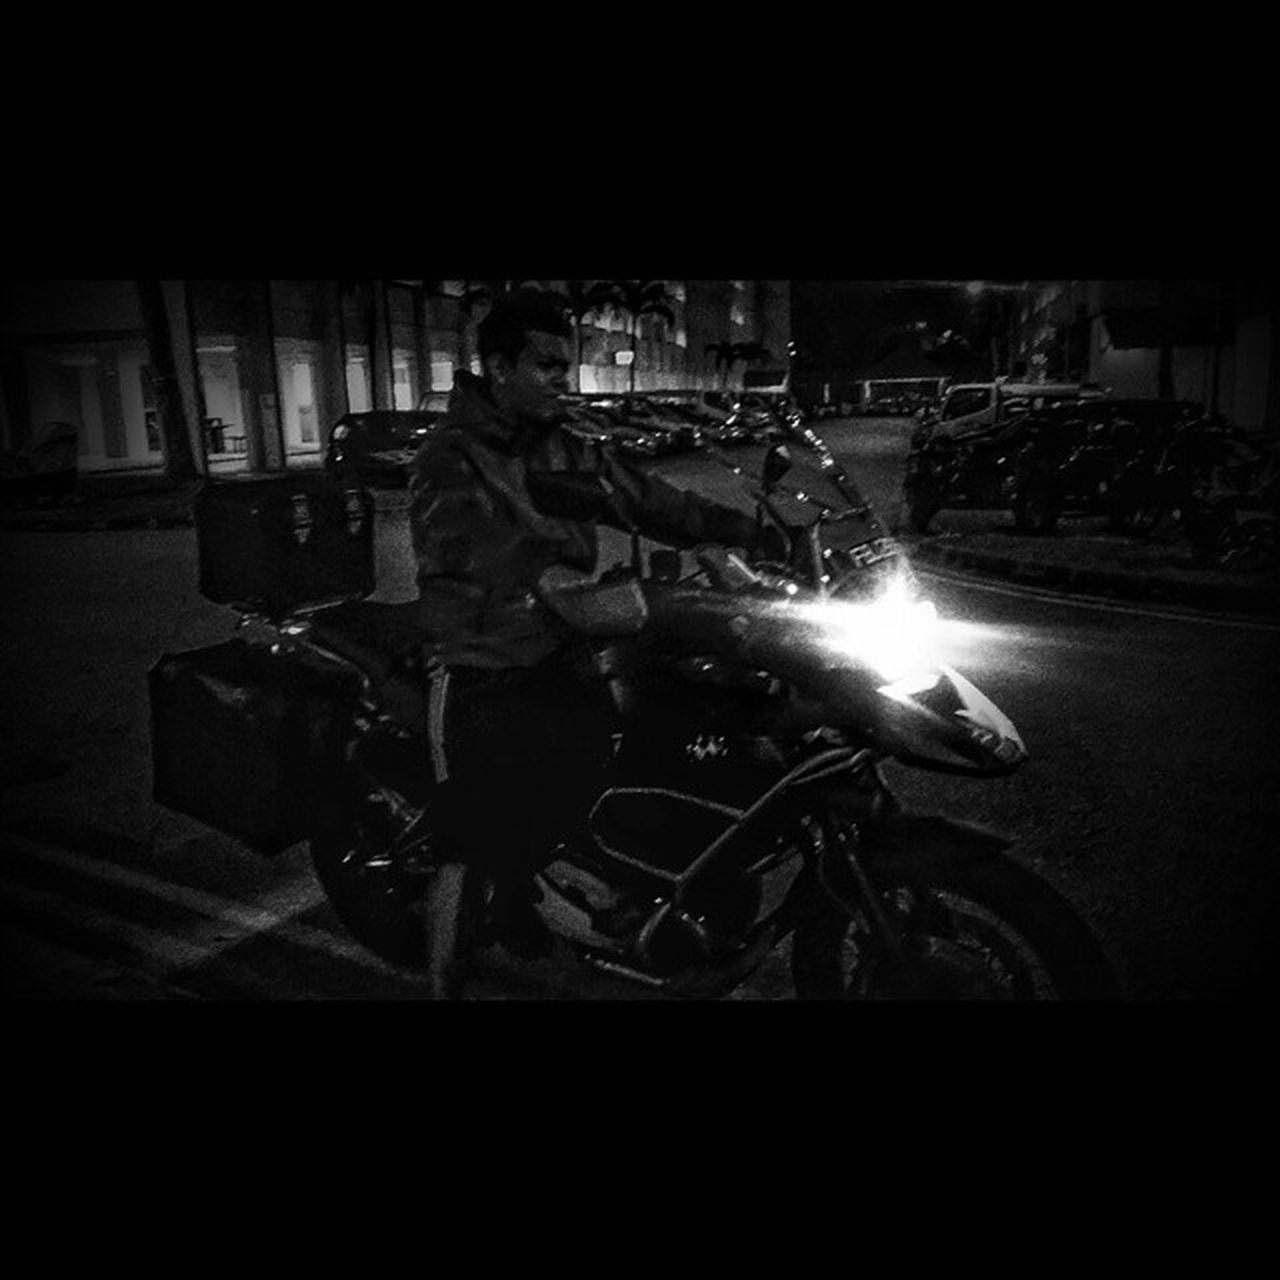 illuminated, night, real people, one person, motorcycle, lifestyles, standing, leisure activity, technology, mobile phone, helmet, full length, holding, wireless technology, photographing, indoors, photography themes, men, young adult, biker, close-up, adult, people